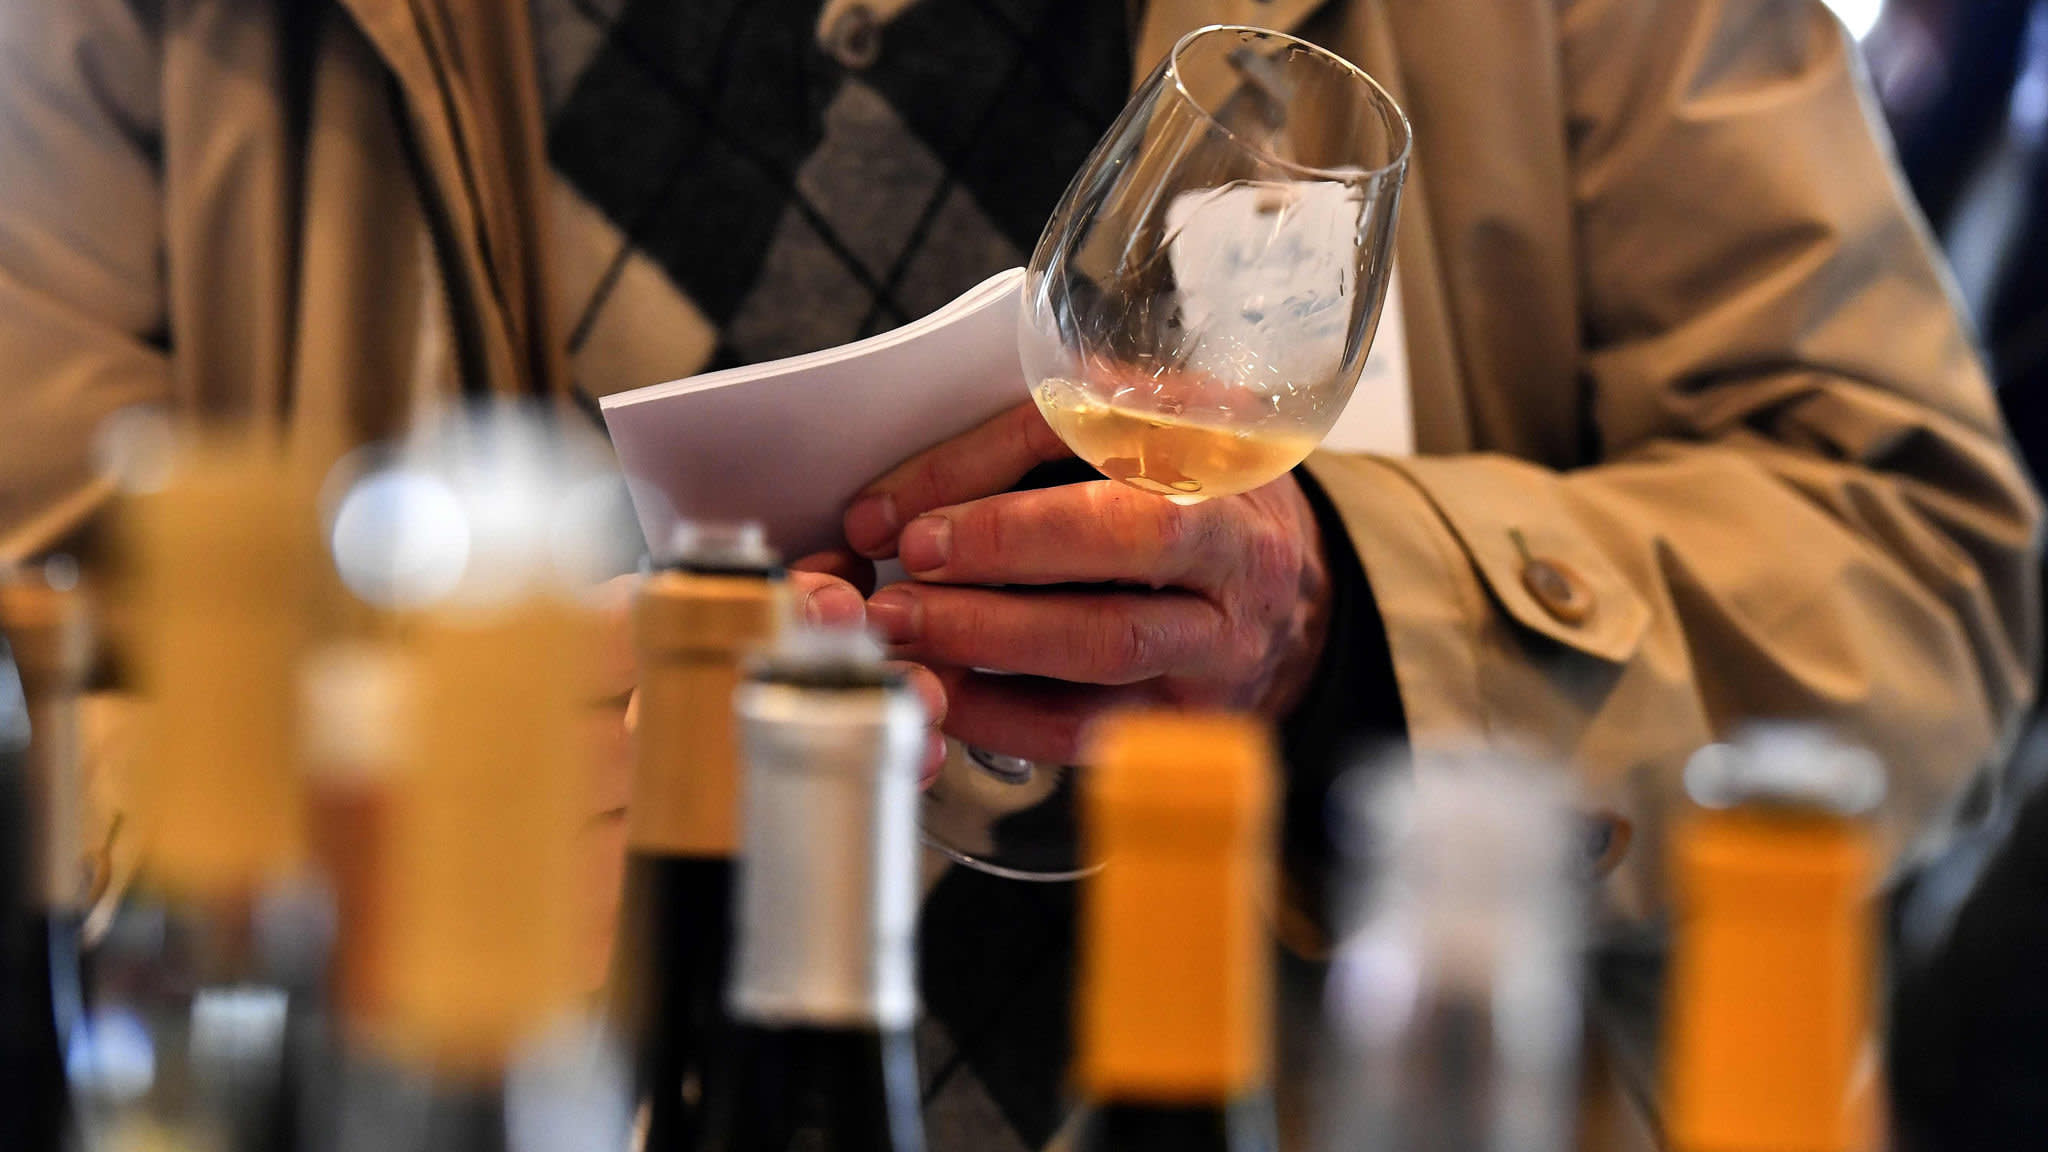 UK wine sellers find themselves squeezed on all sides | Financial Times